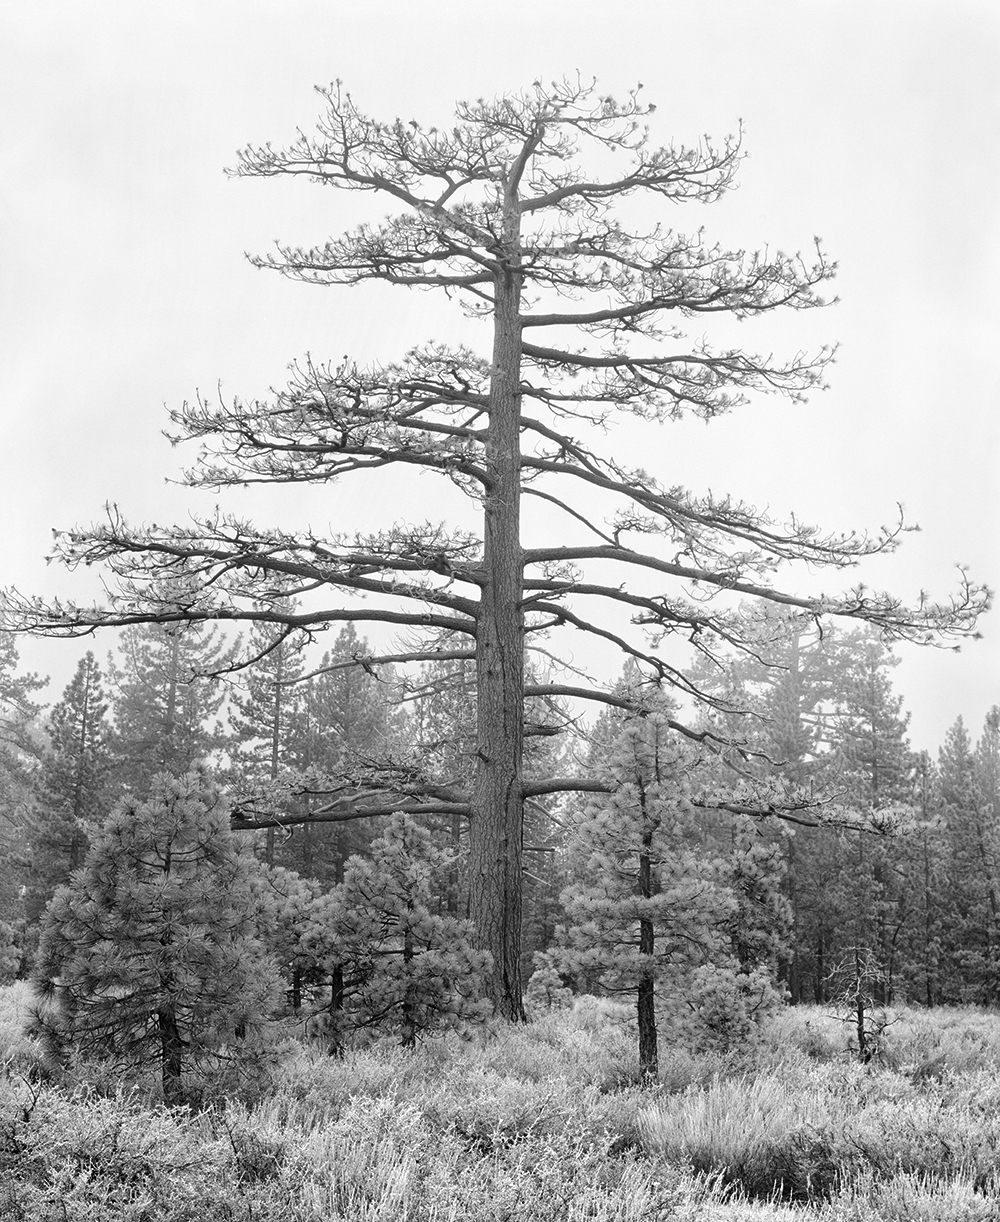 Sugarpine in Fog 4x5 BW.jpg